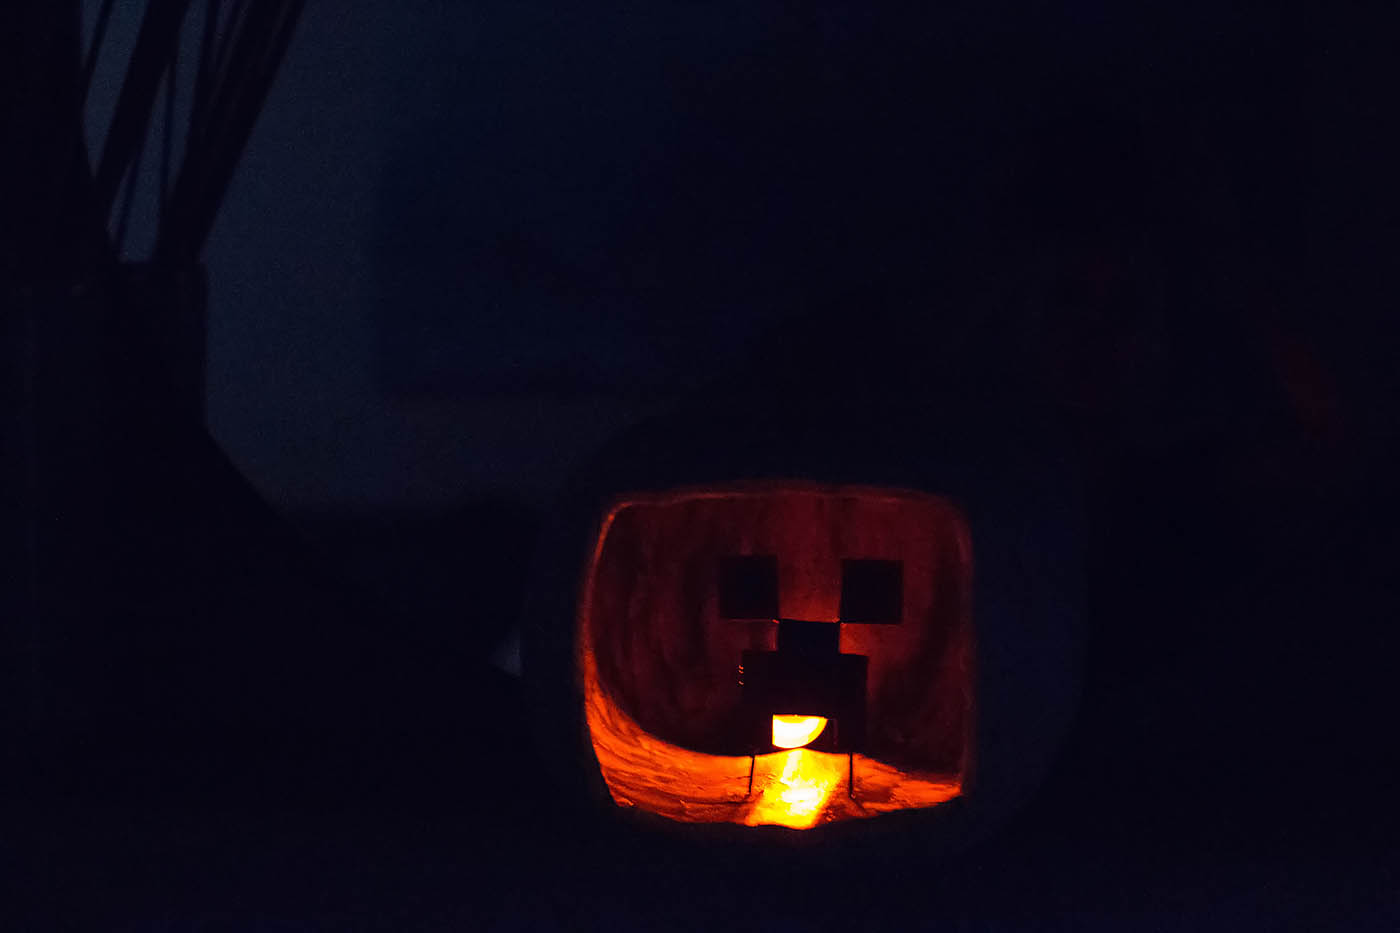 DIY Minecraft Creeper shadowbox pumpkin - see the easy how to at allfortheboys.com